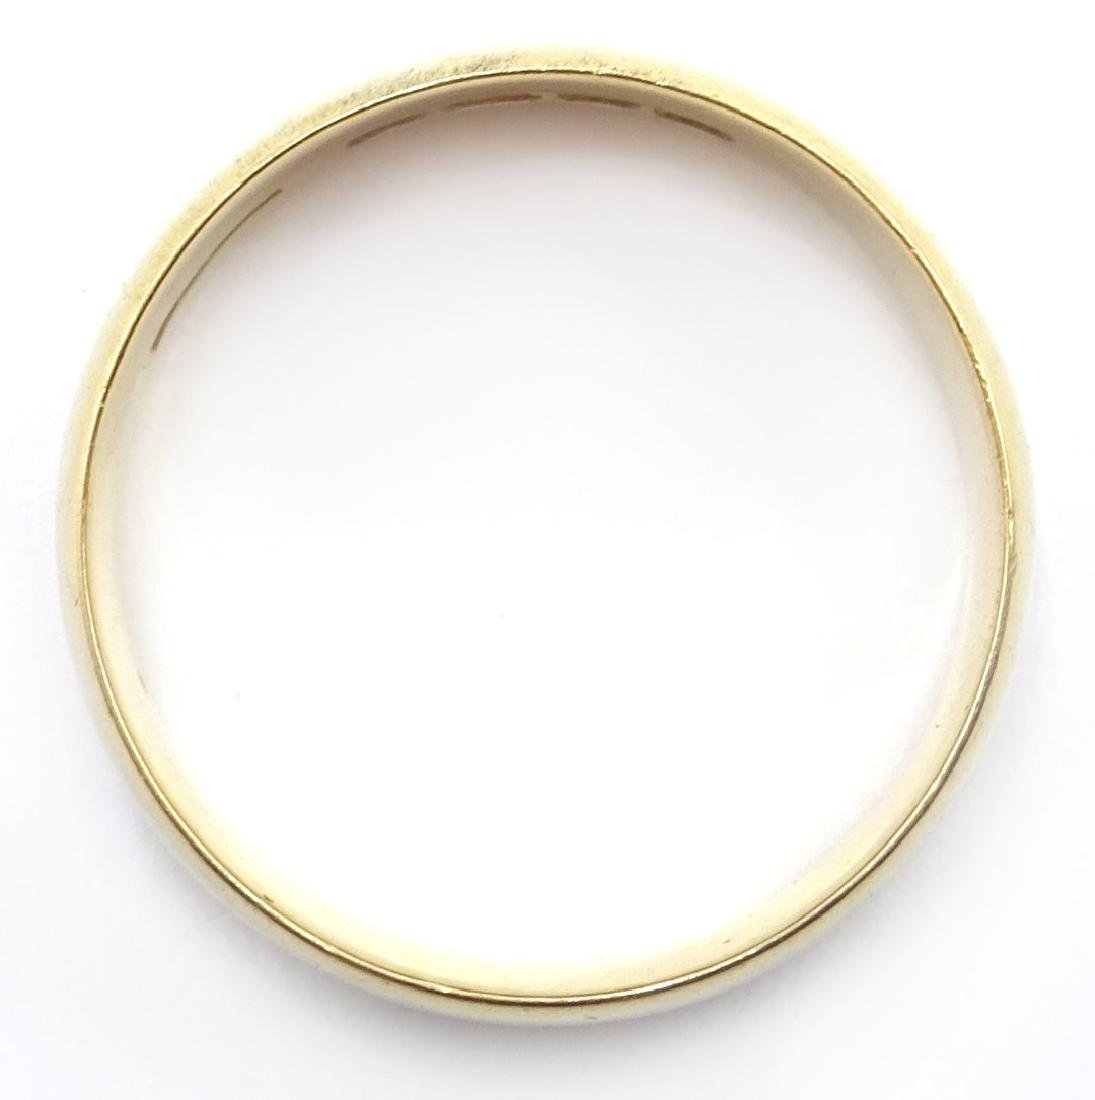 18ct gold wedding band Sheffield 1937 - 3